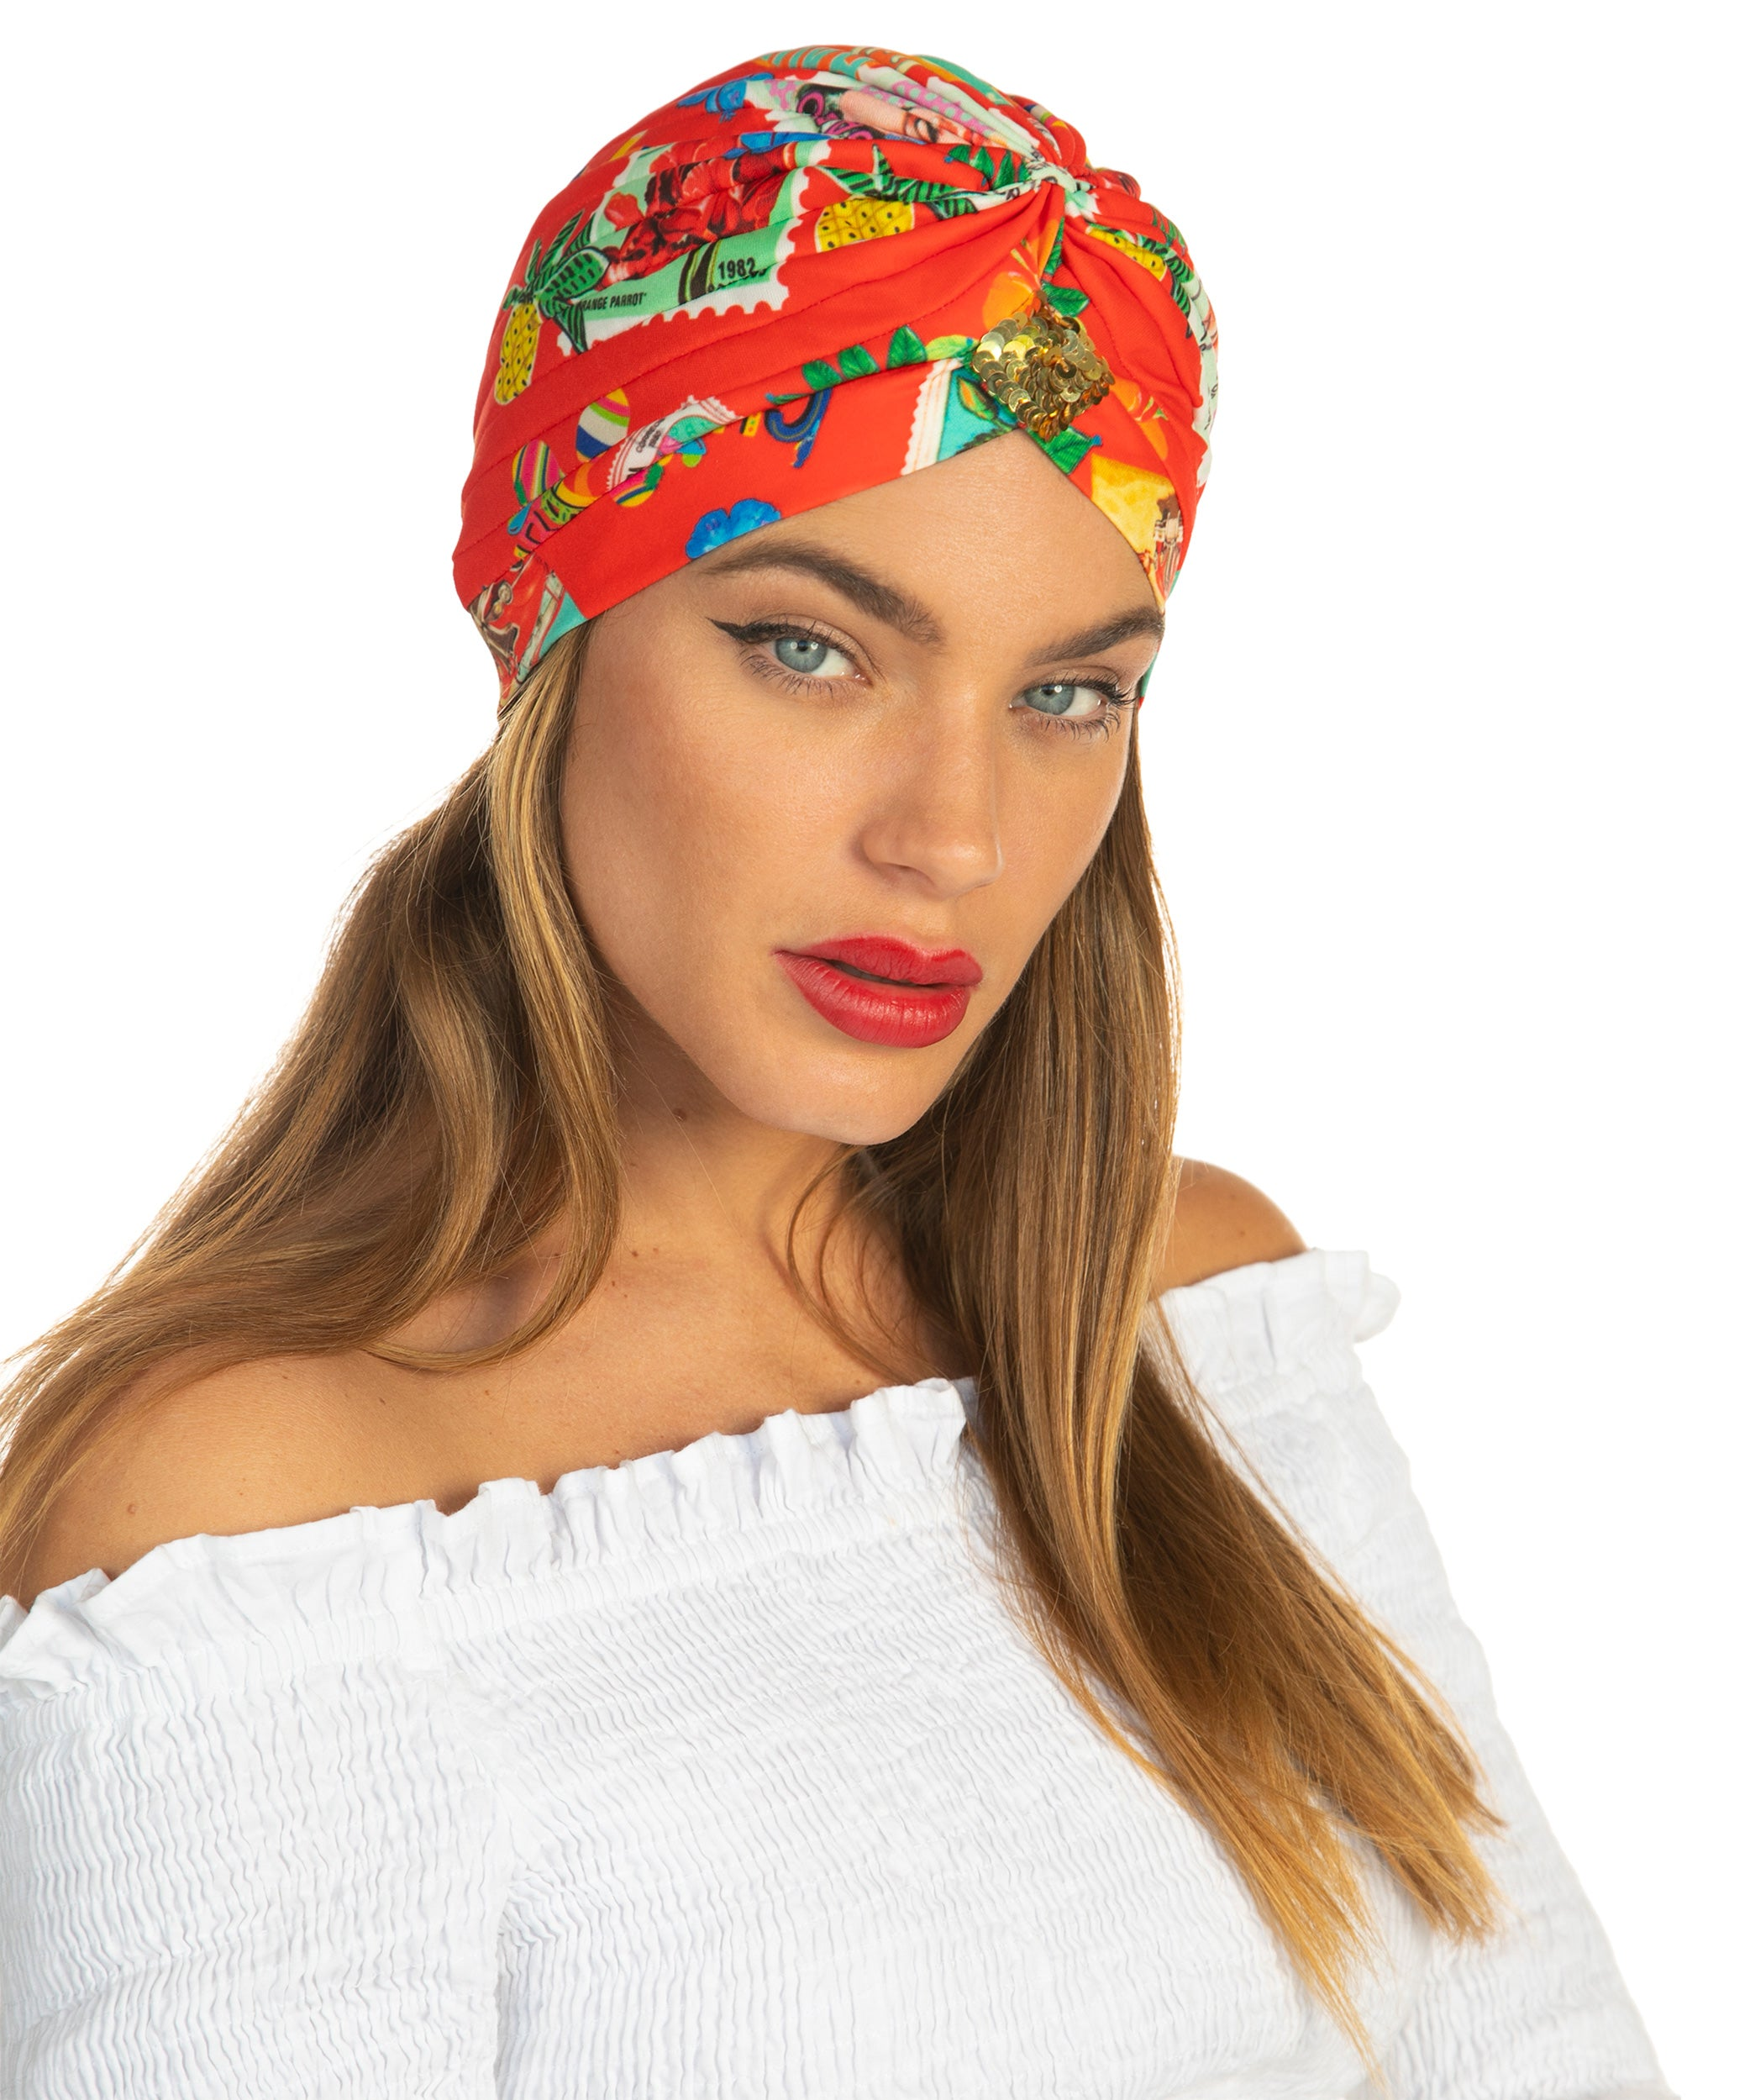 The Red Cuban Stamp Turban